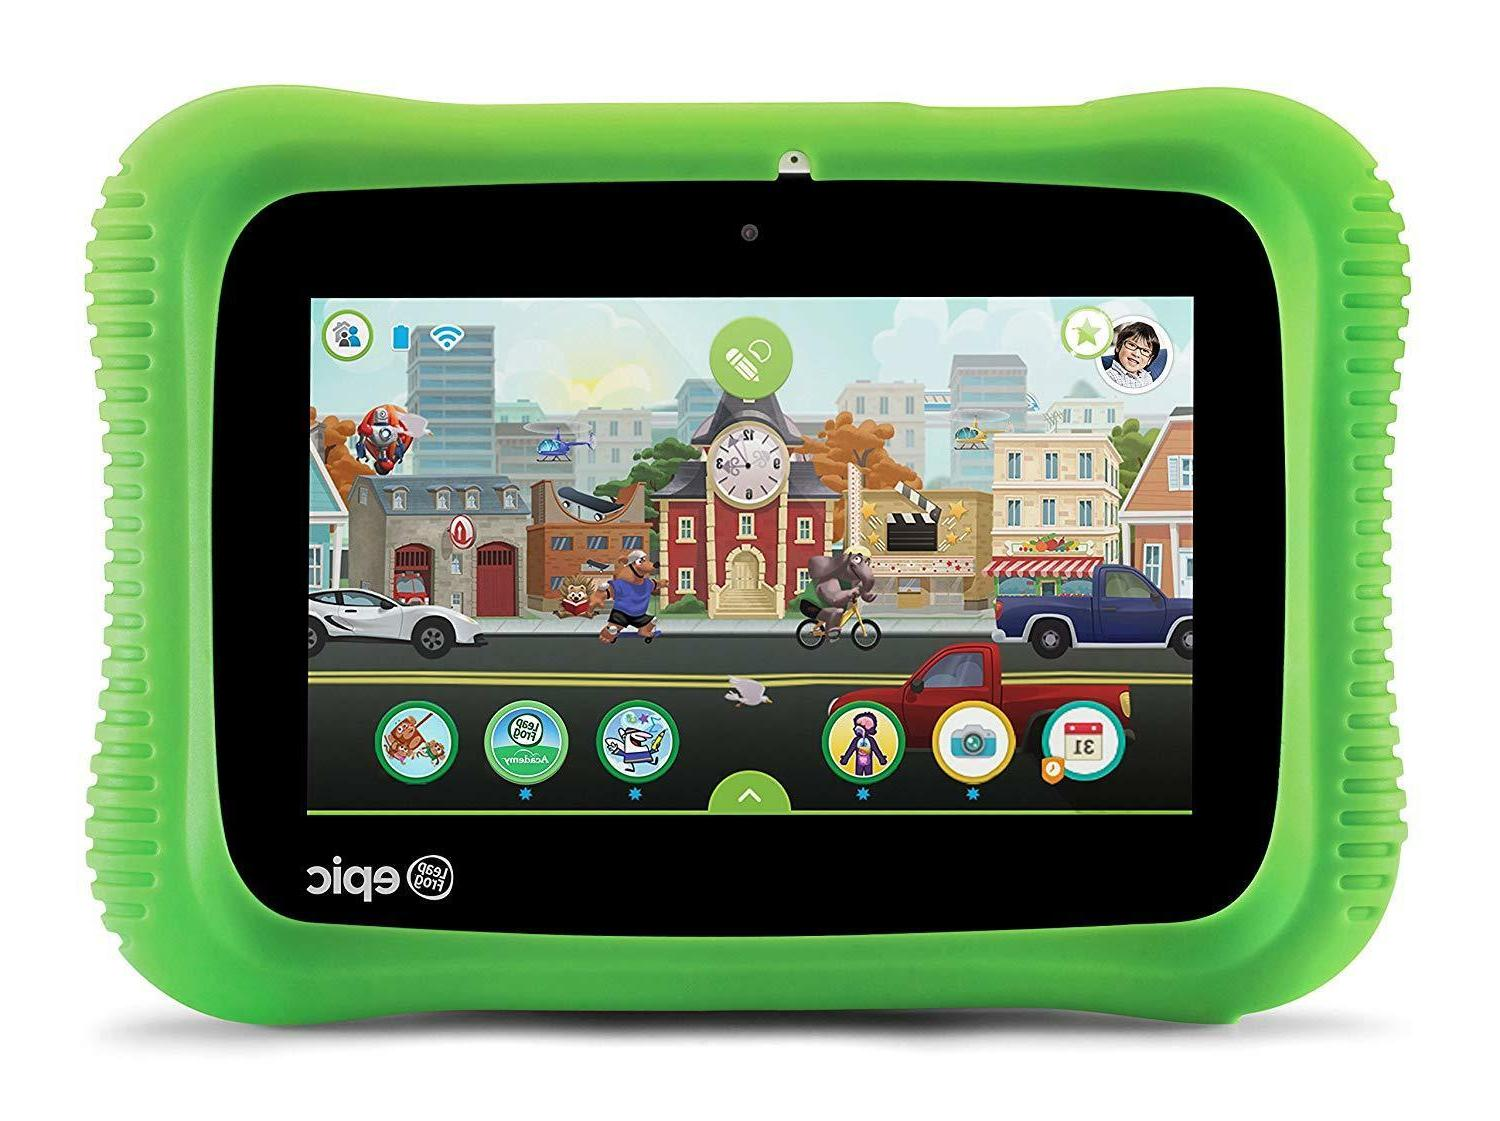 toddler learning tablet games educational electronic kids